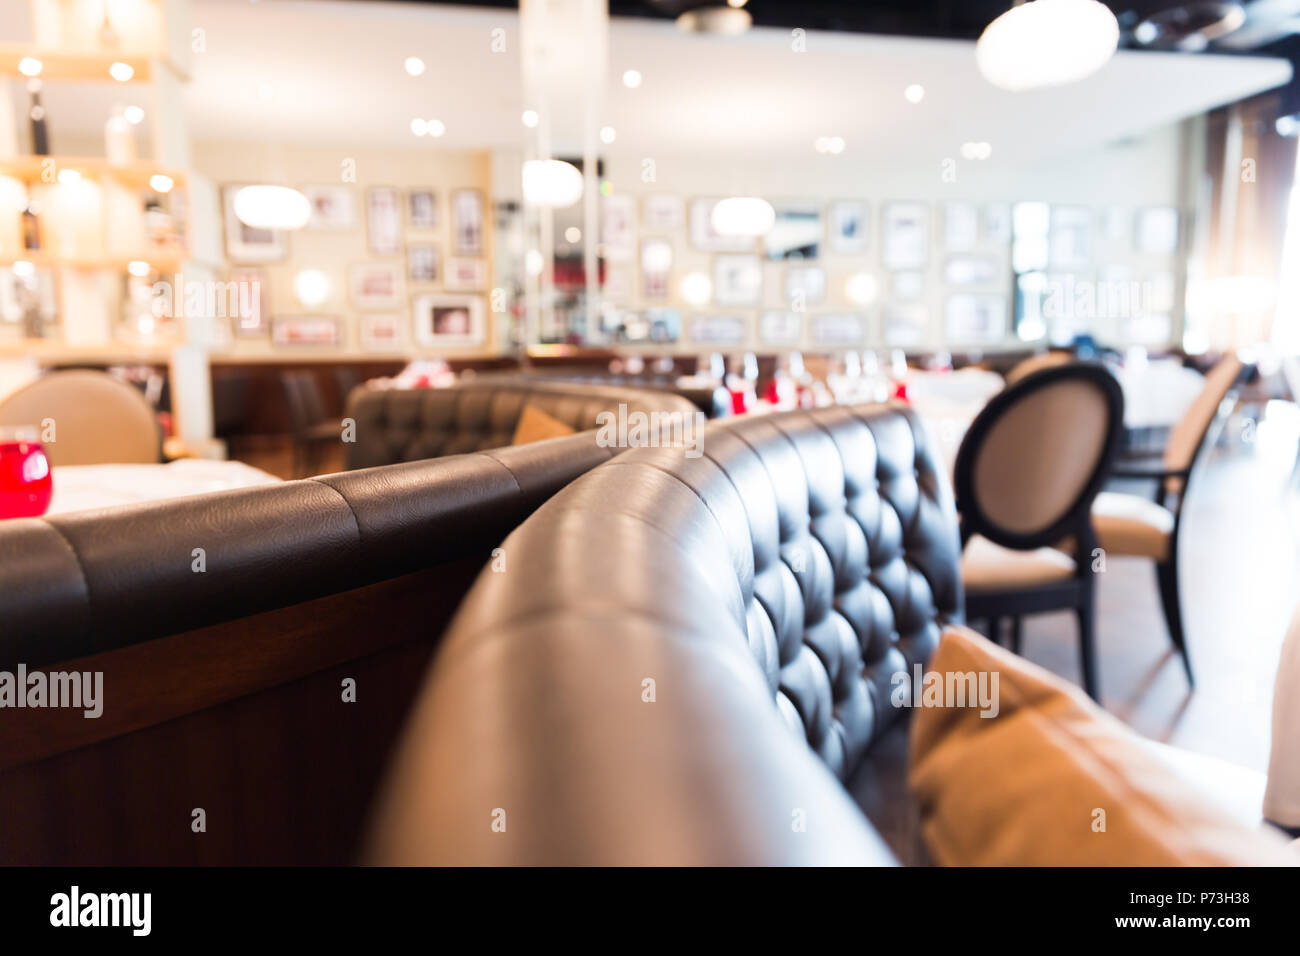 Restaurant Rounded Leather Coach with Blurred Background - Stock Image